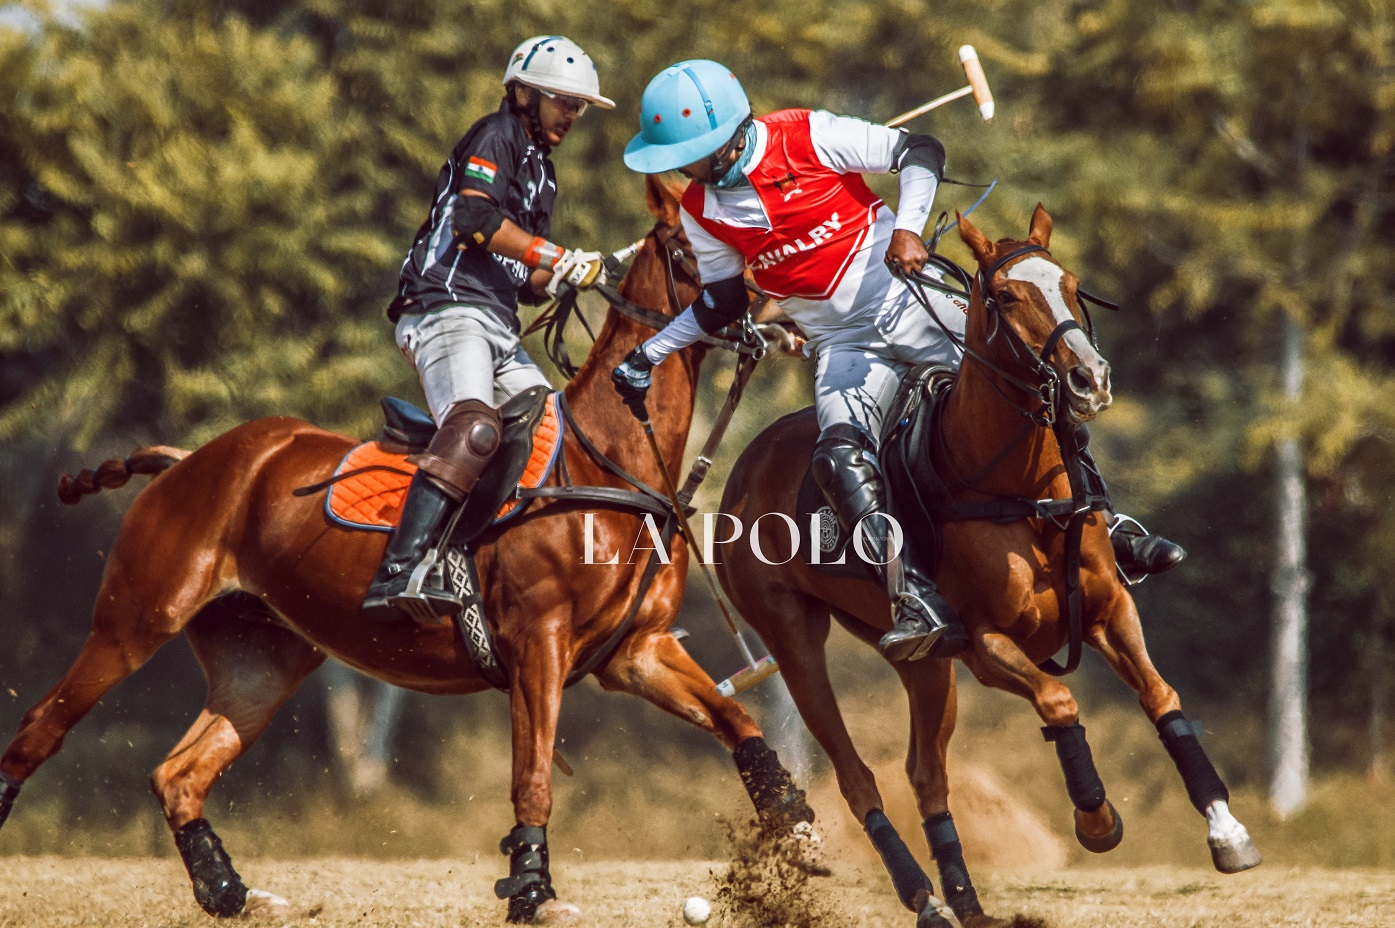 Polo In Jaipur With Swiss Kanota Cup